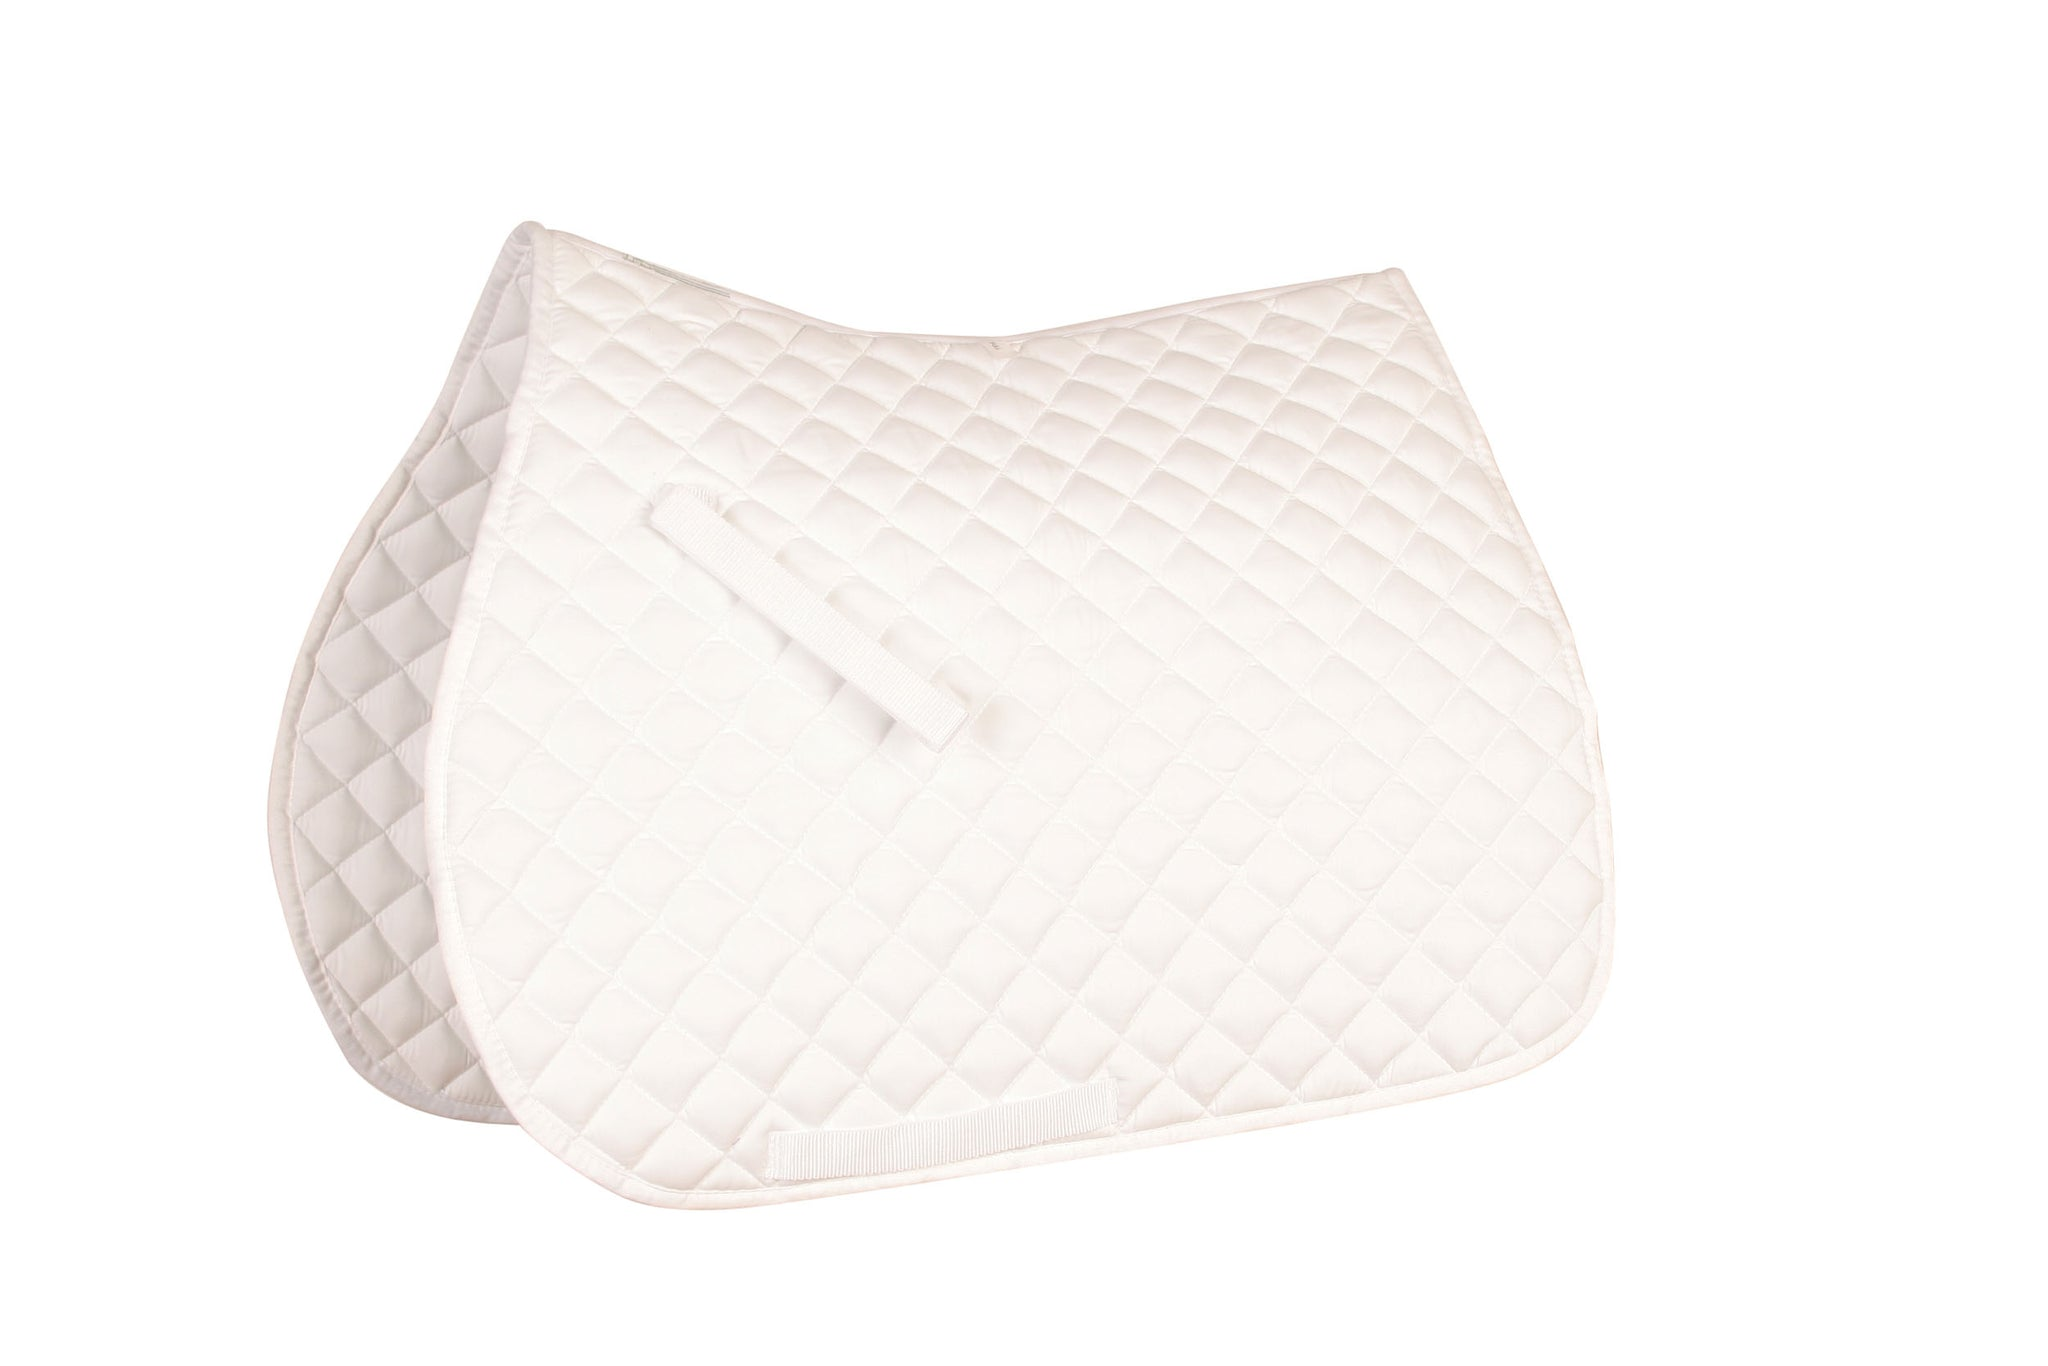 ROMA Grand Prix A/P Saddle Pad